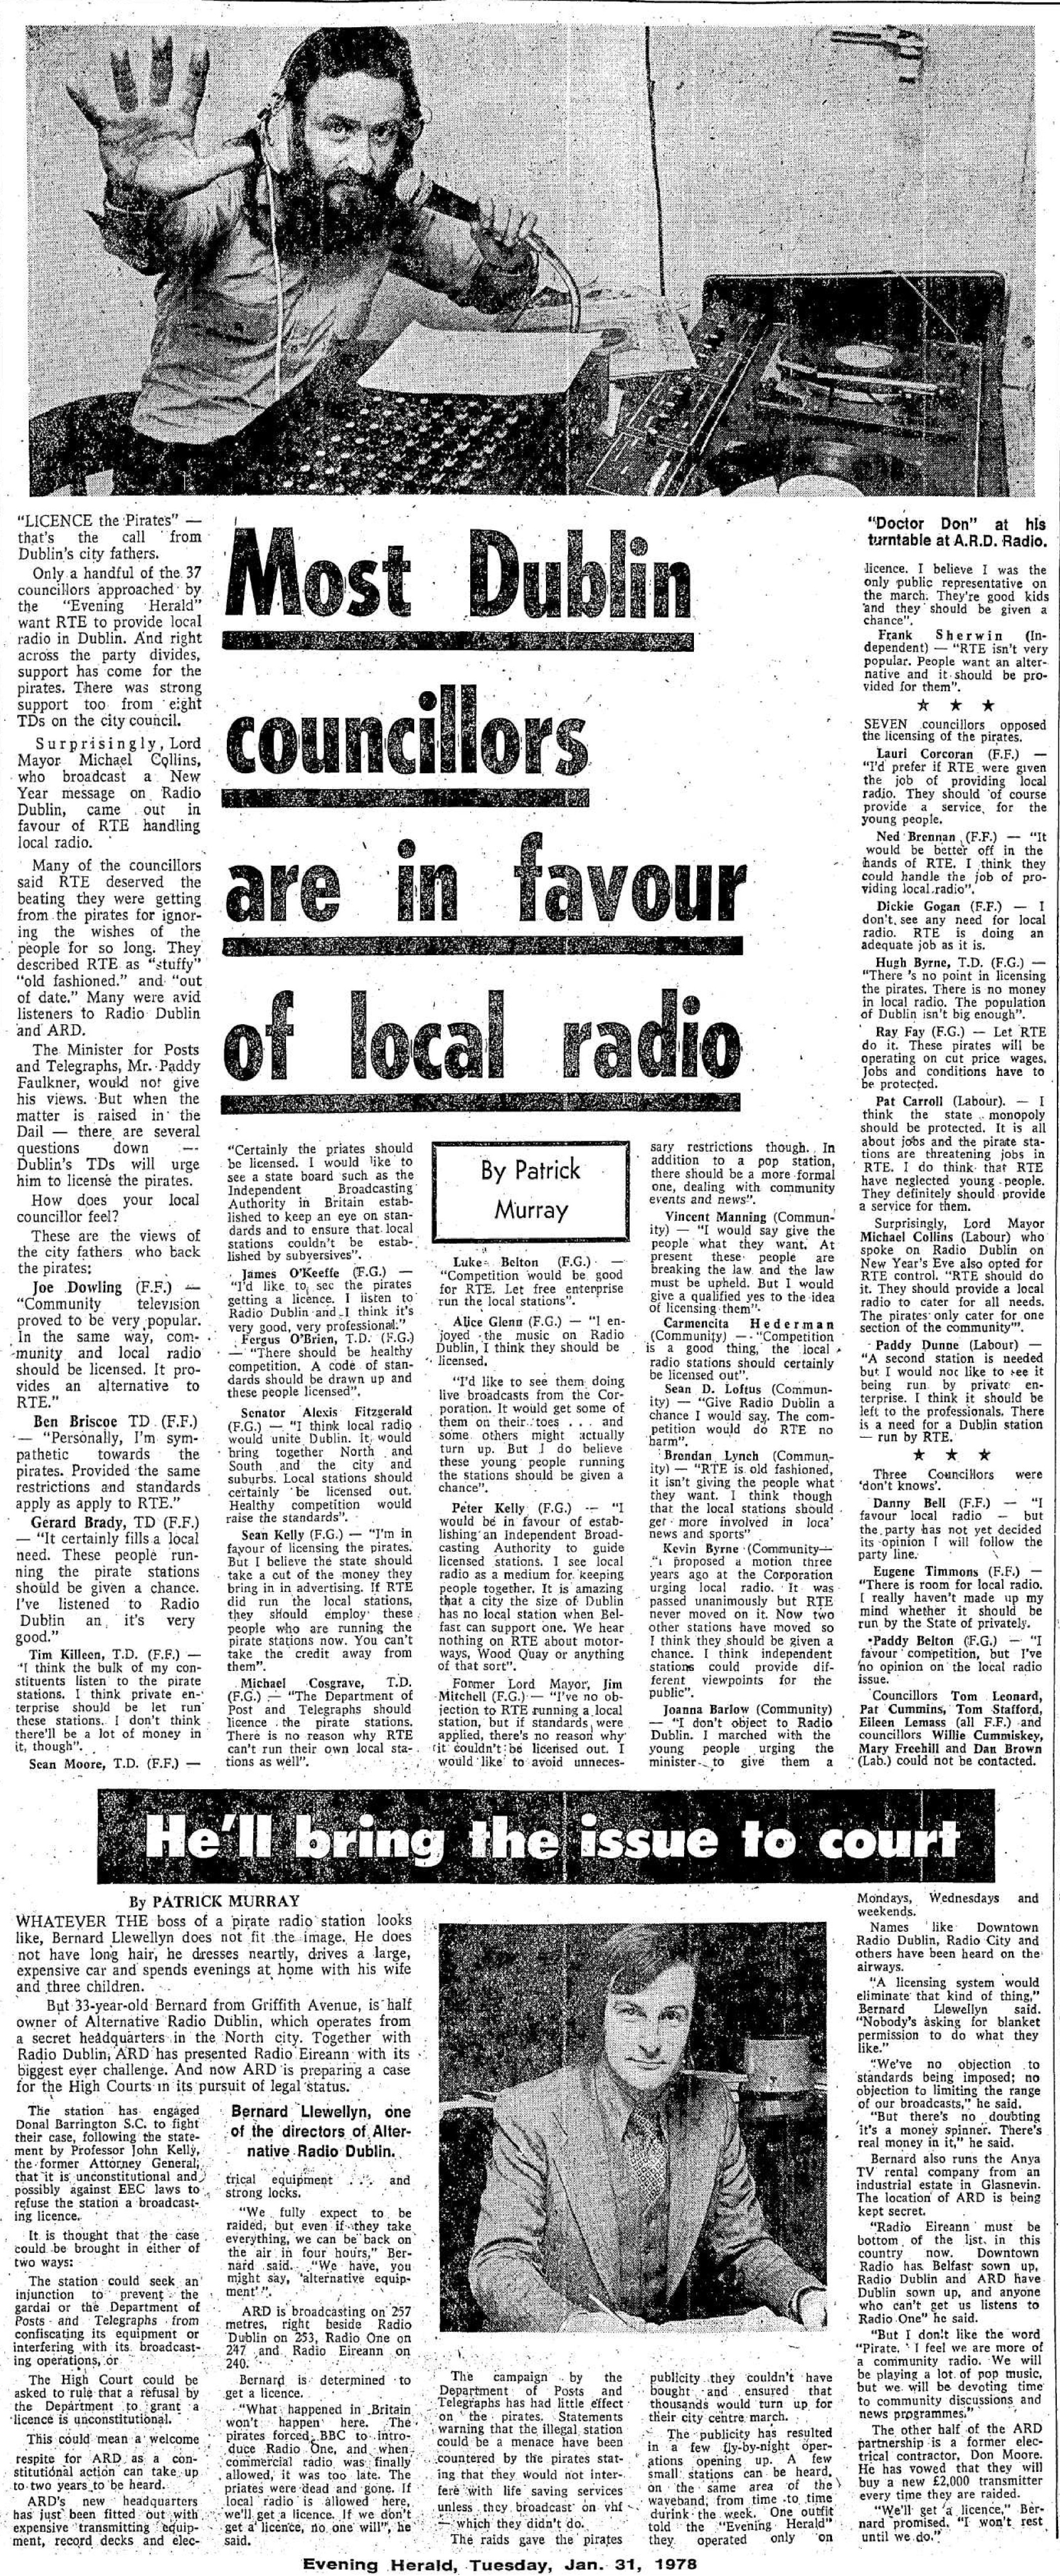 Most Dublin councillors are in favour of local radio was a newspaper headline from The Evening Herald dated January 31st 1978